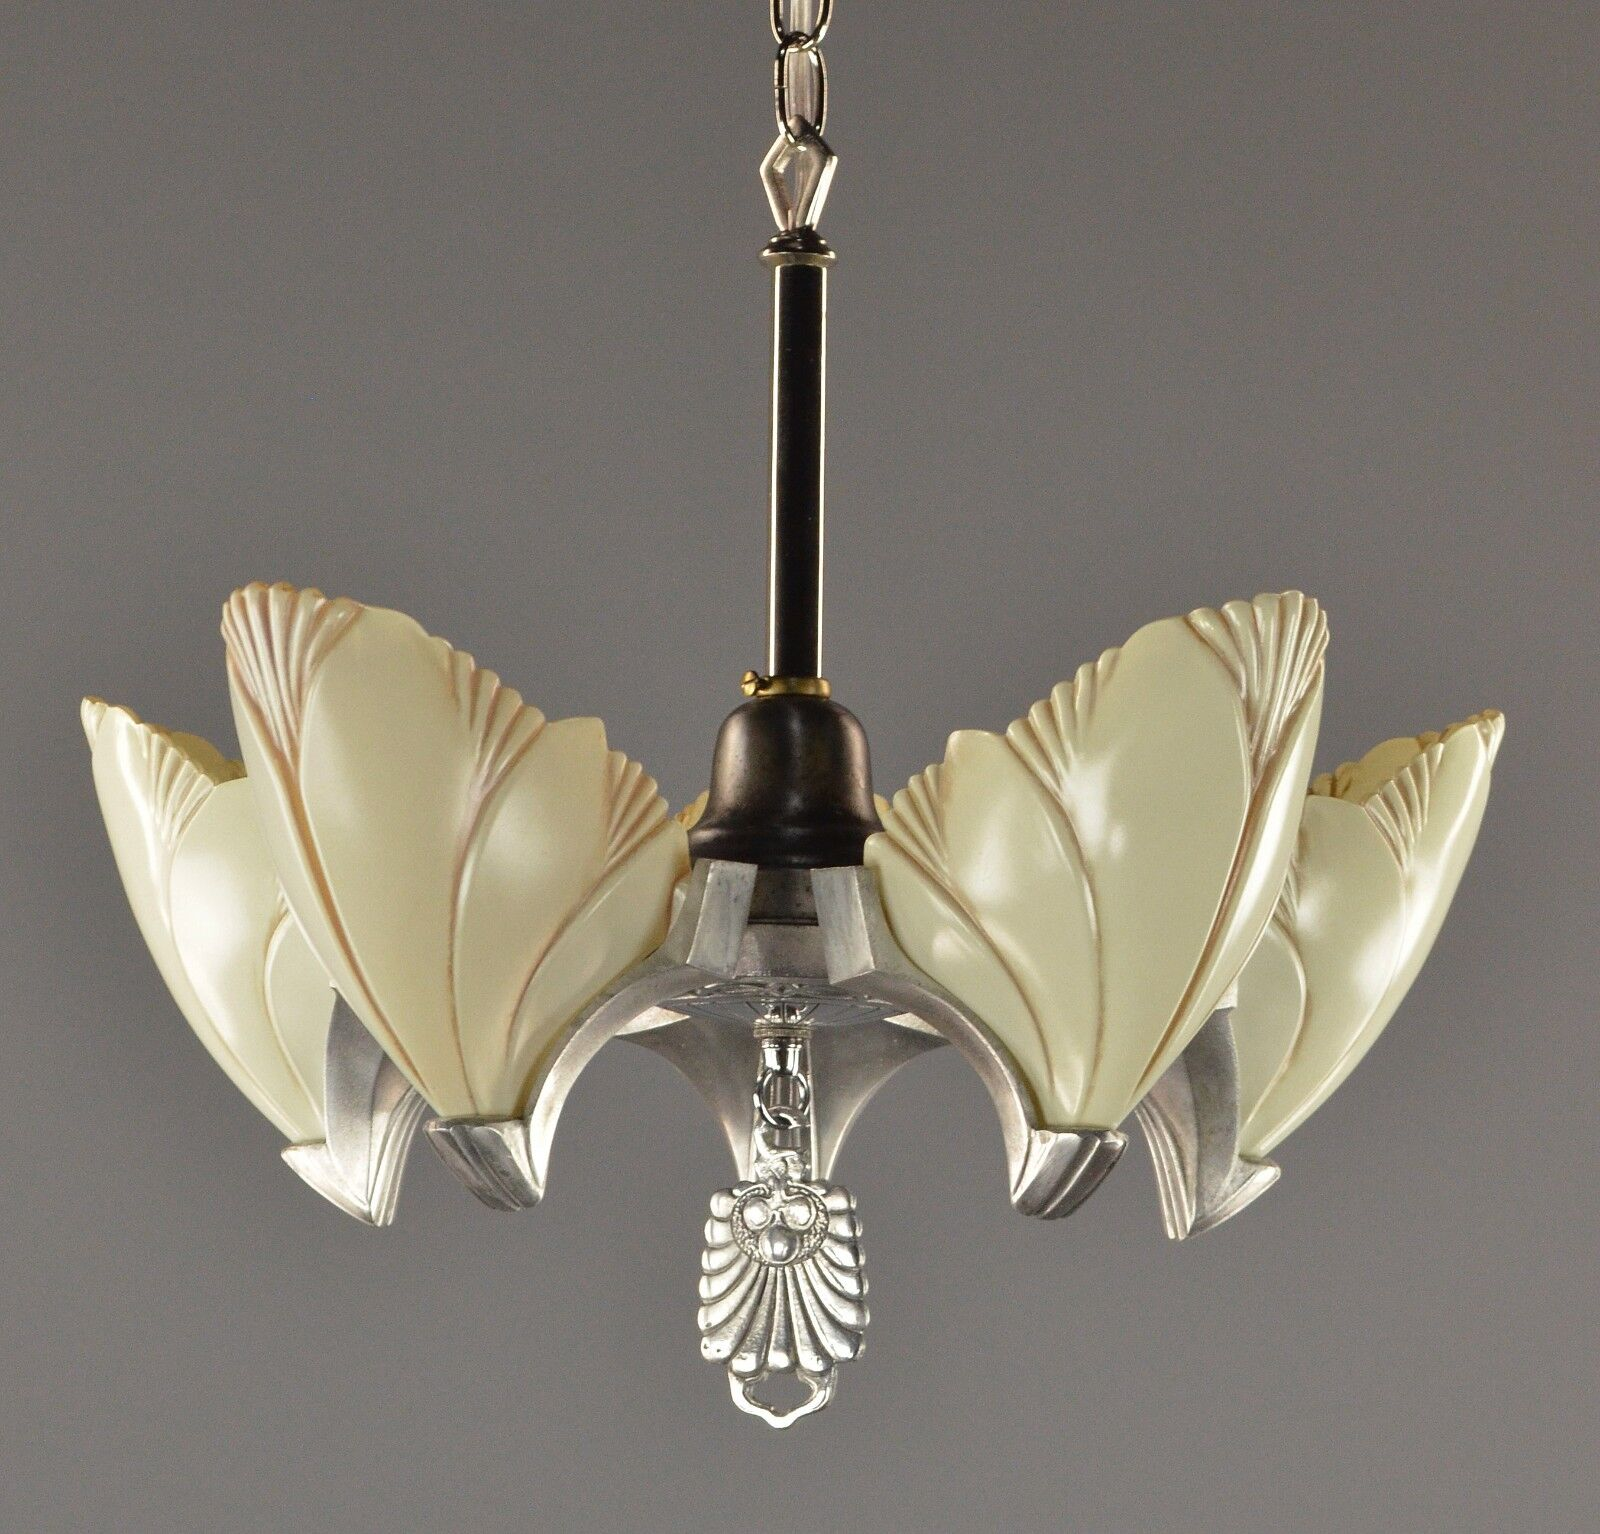 Art deco slipper shade chandelier c1930 vintage antique silver art deco slipper shade chandelier c1930 arubaitofo Image collections